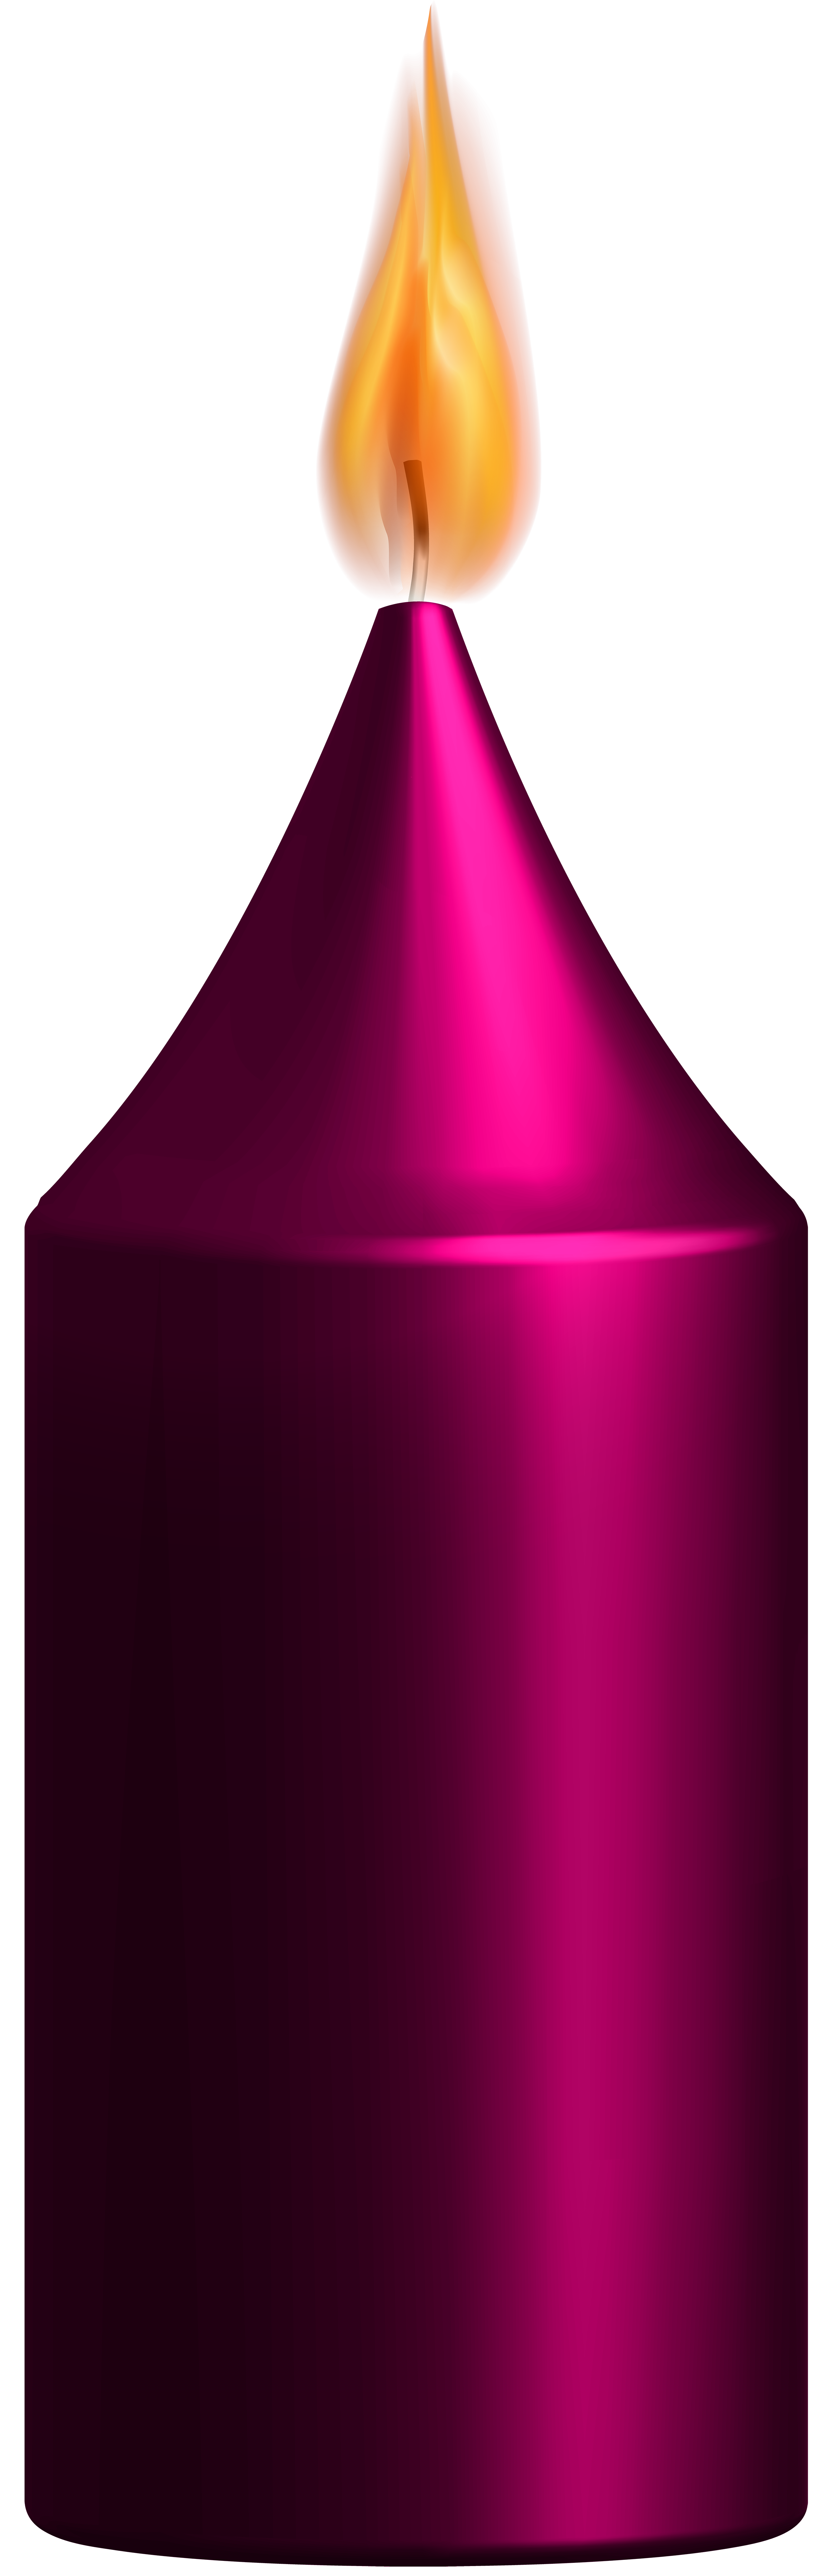 Clipart candle pink candle. Png clip art best